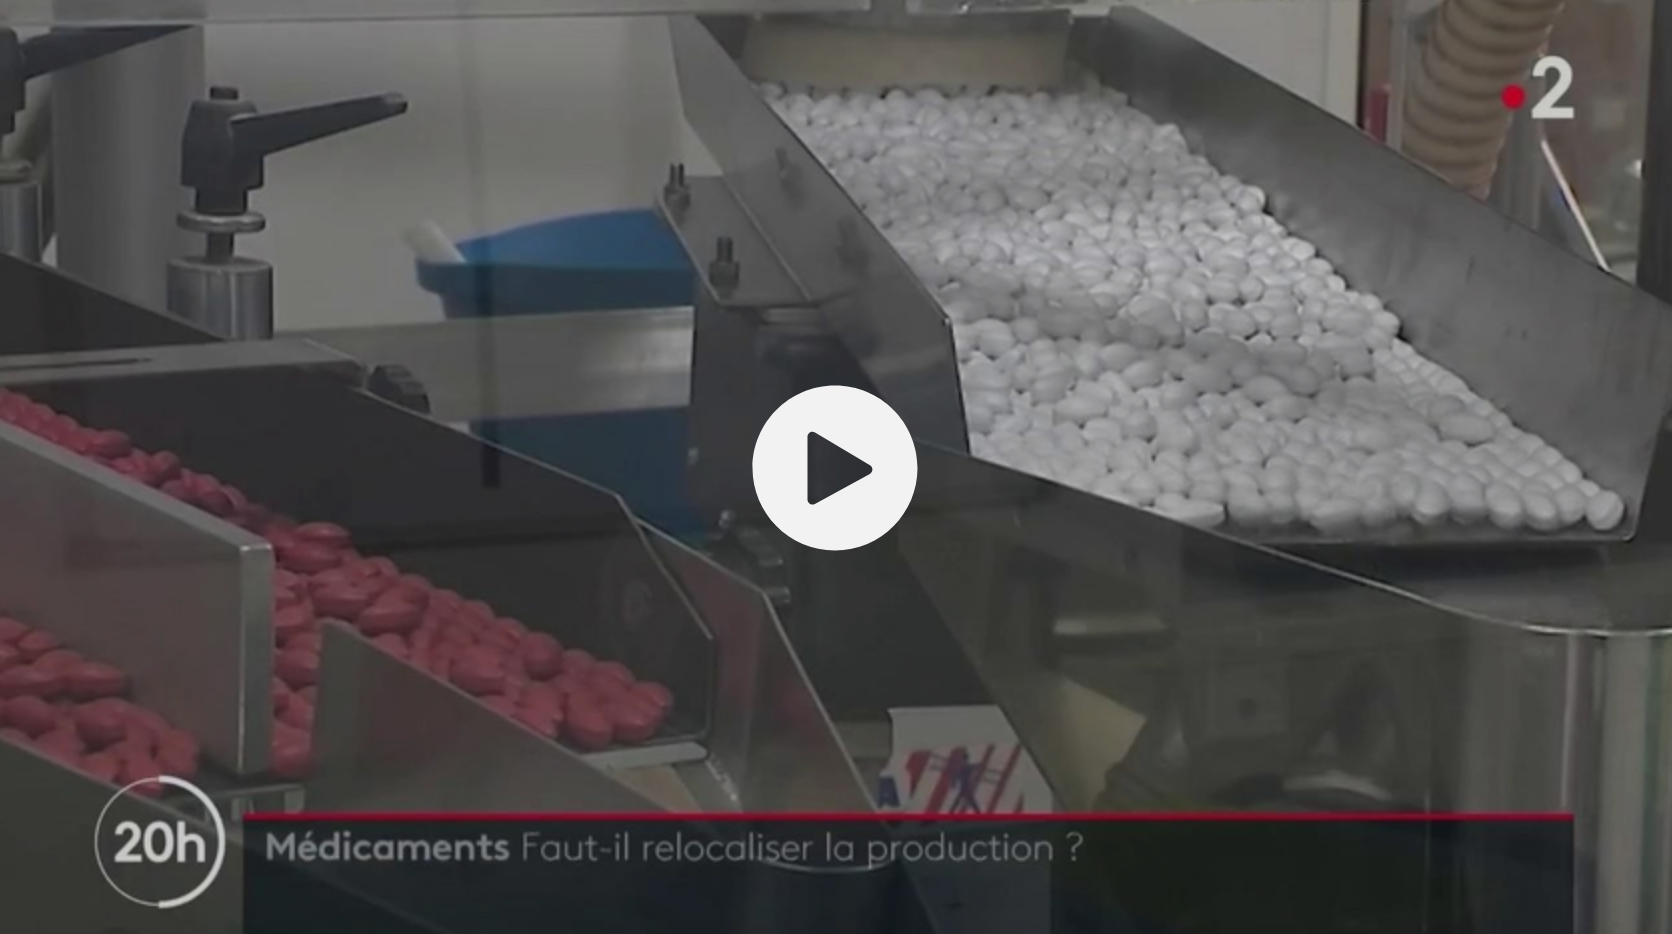 Médicaments : il faut relocaliser la production en France